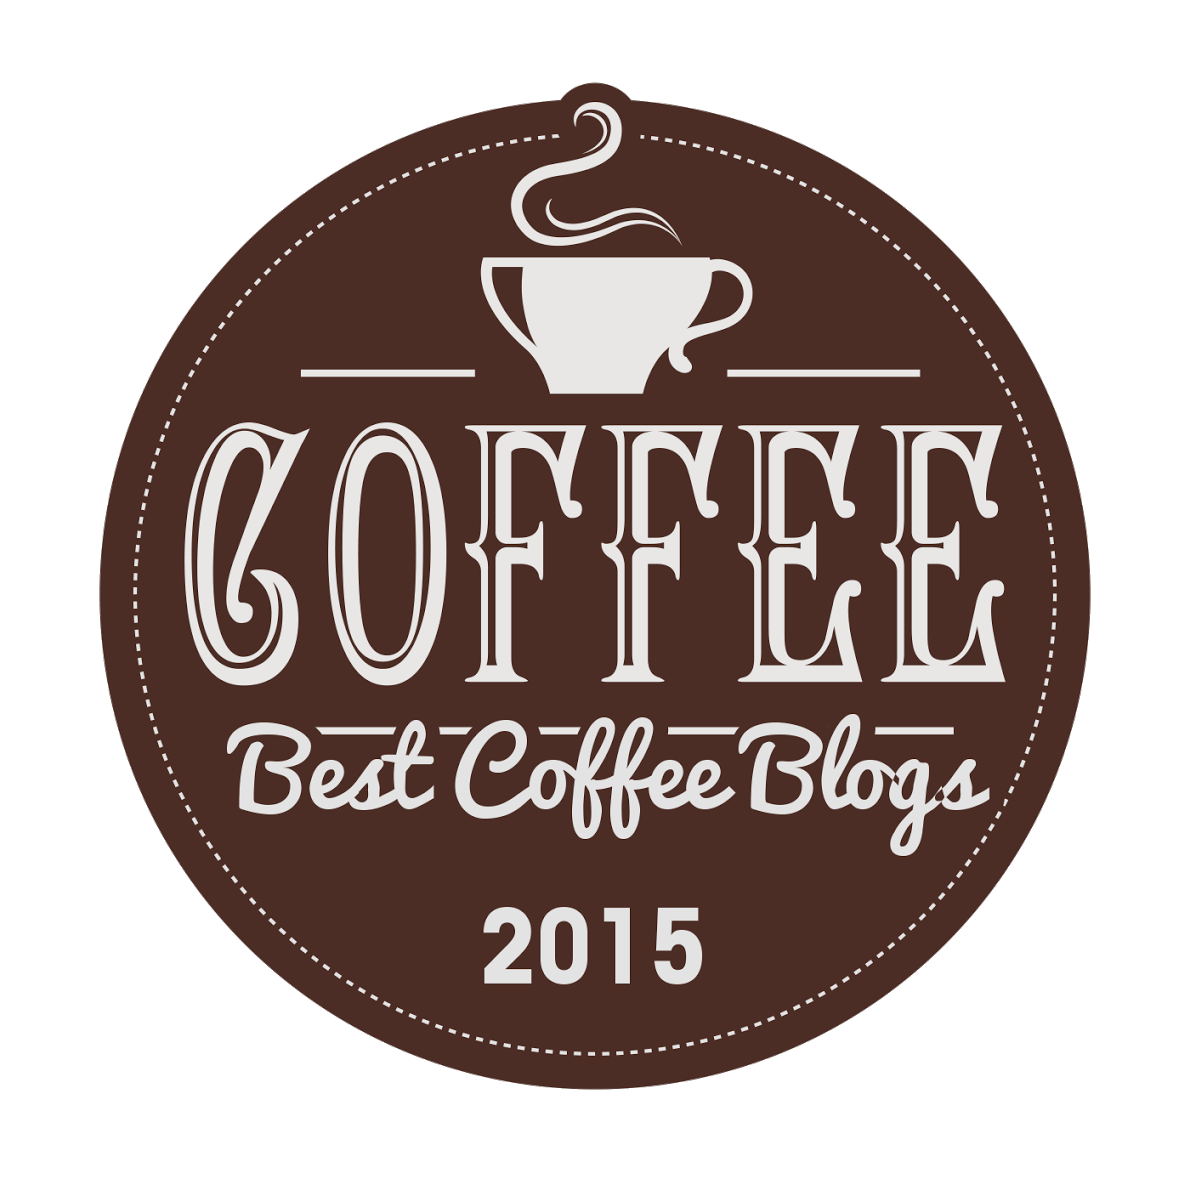 BoiseCoffee listed in Best Coffee Blogs of 2015